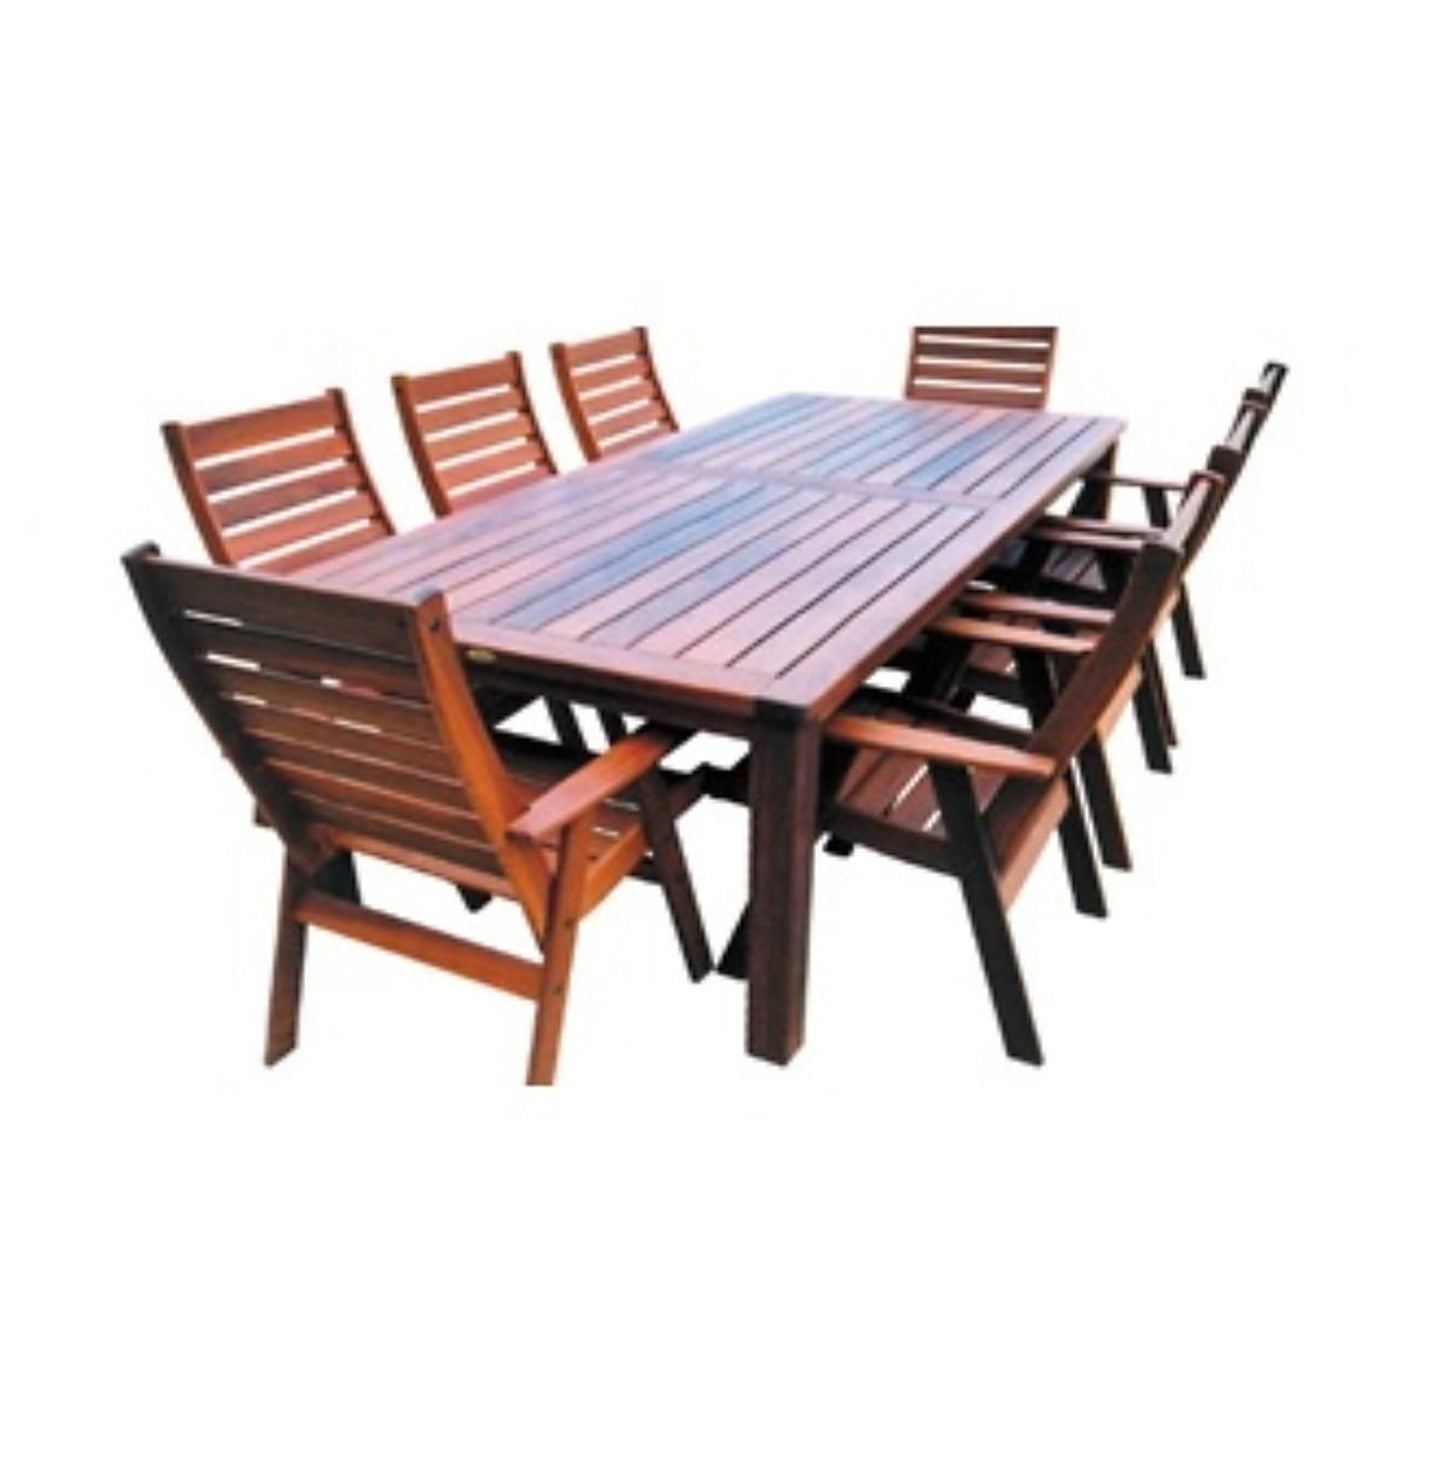 Kimberley Jarrah Outdoor Table – L240cm